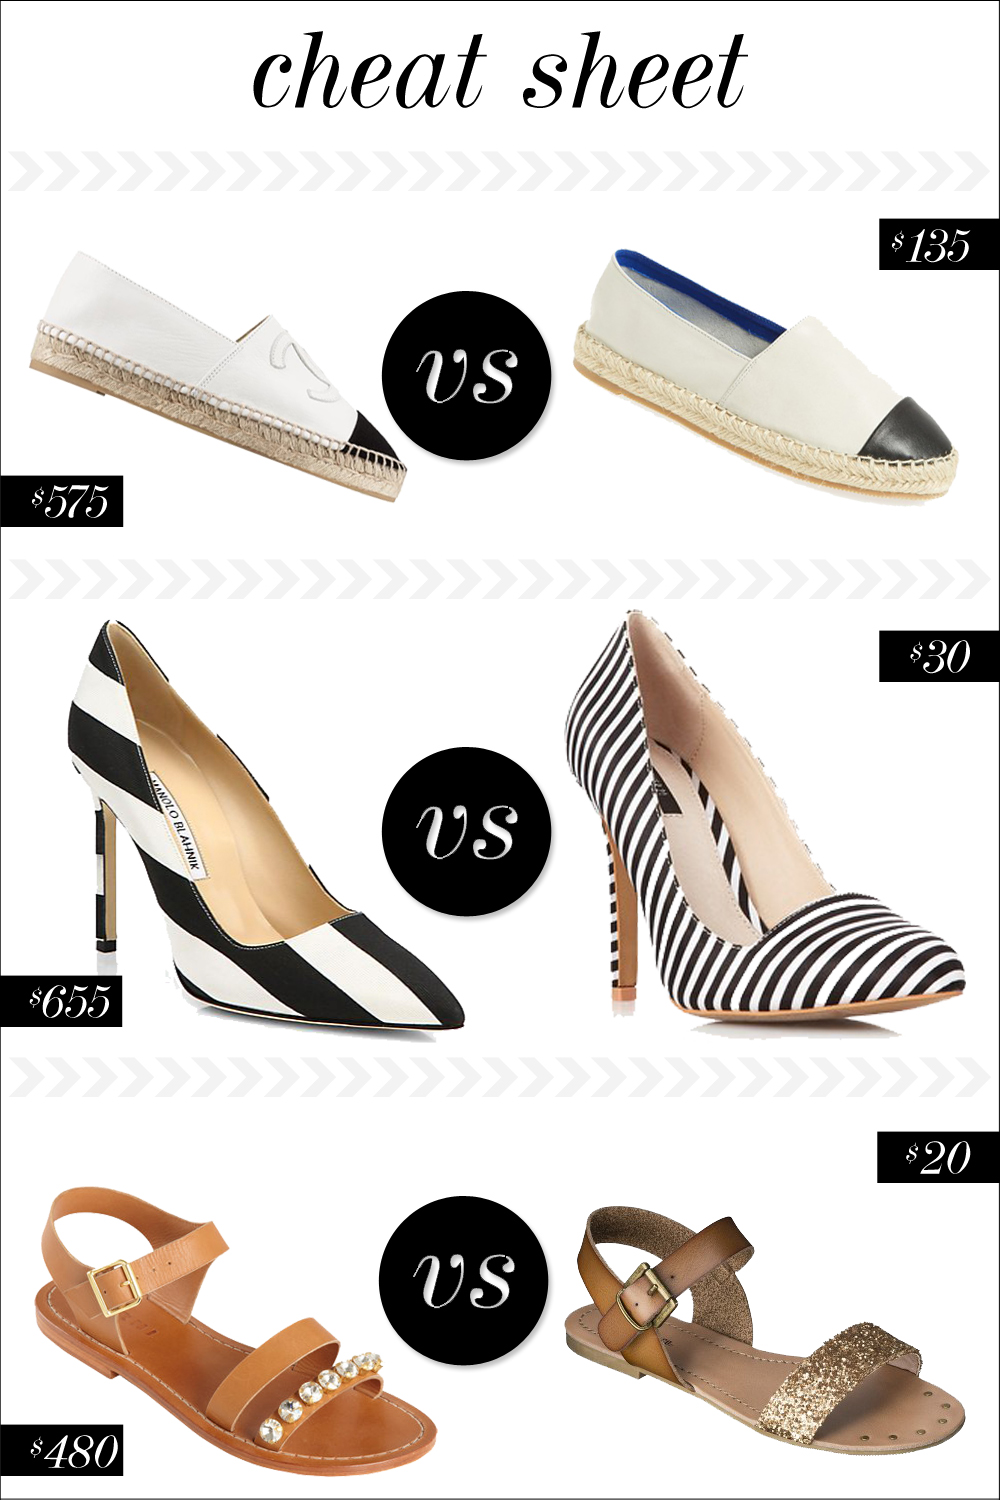 cheat-sheet-spring-shoes-1